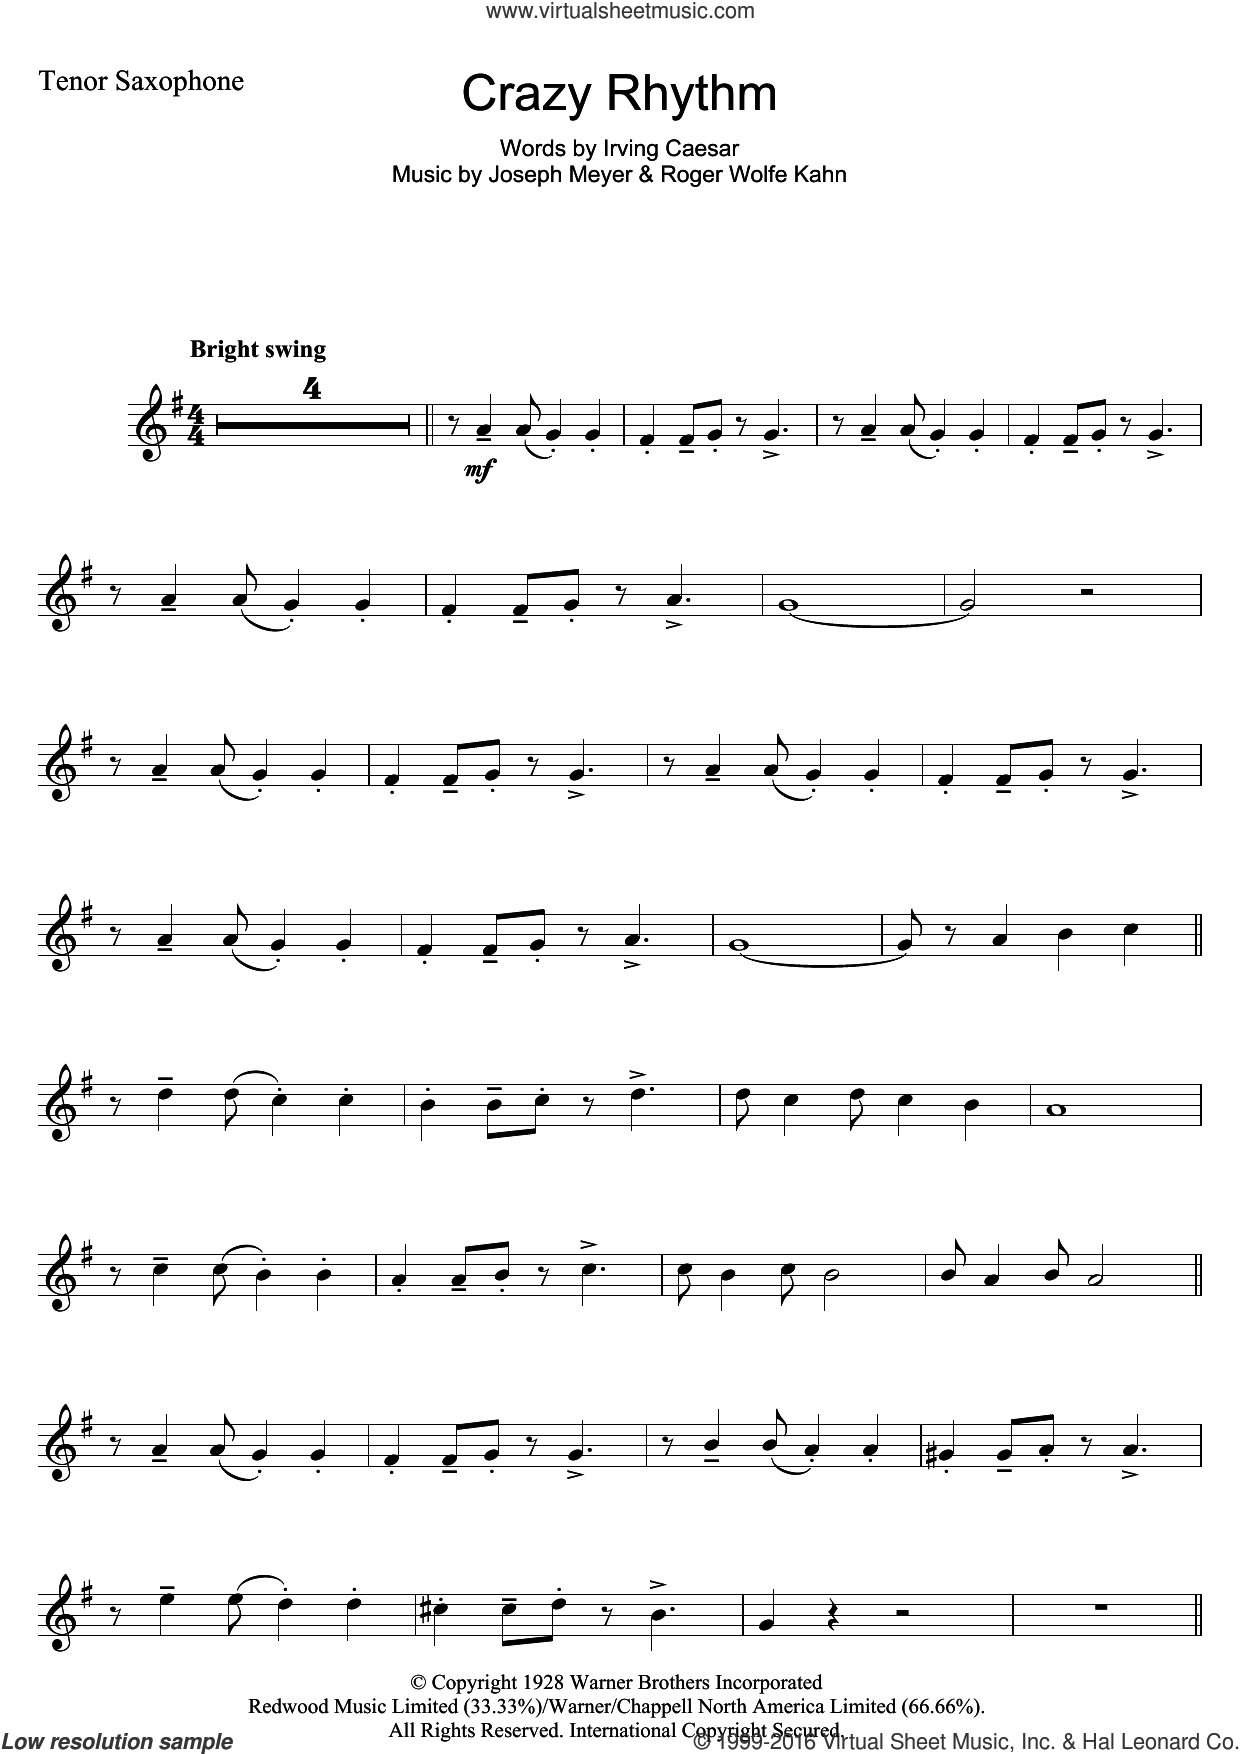 Crazy Rhythm sheet music for tenor saxophone solo by Roger Wolfe Kahn, Chet Baker, Irving Caesar and Joseph Meyer. Score Image Preview.